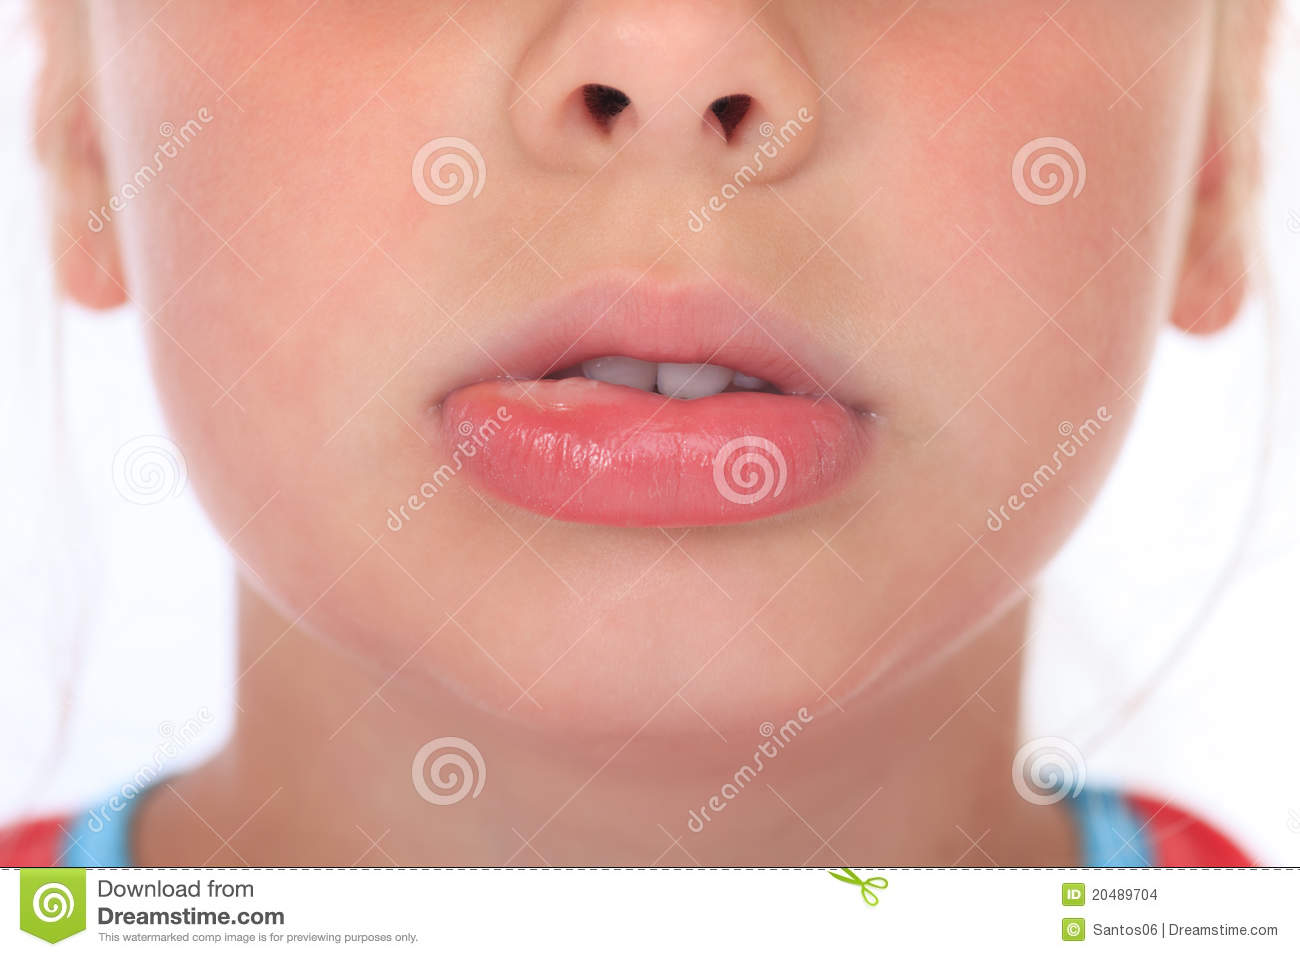 Is a cold sore dangerous for a growing fetus picture